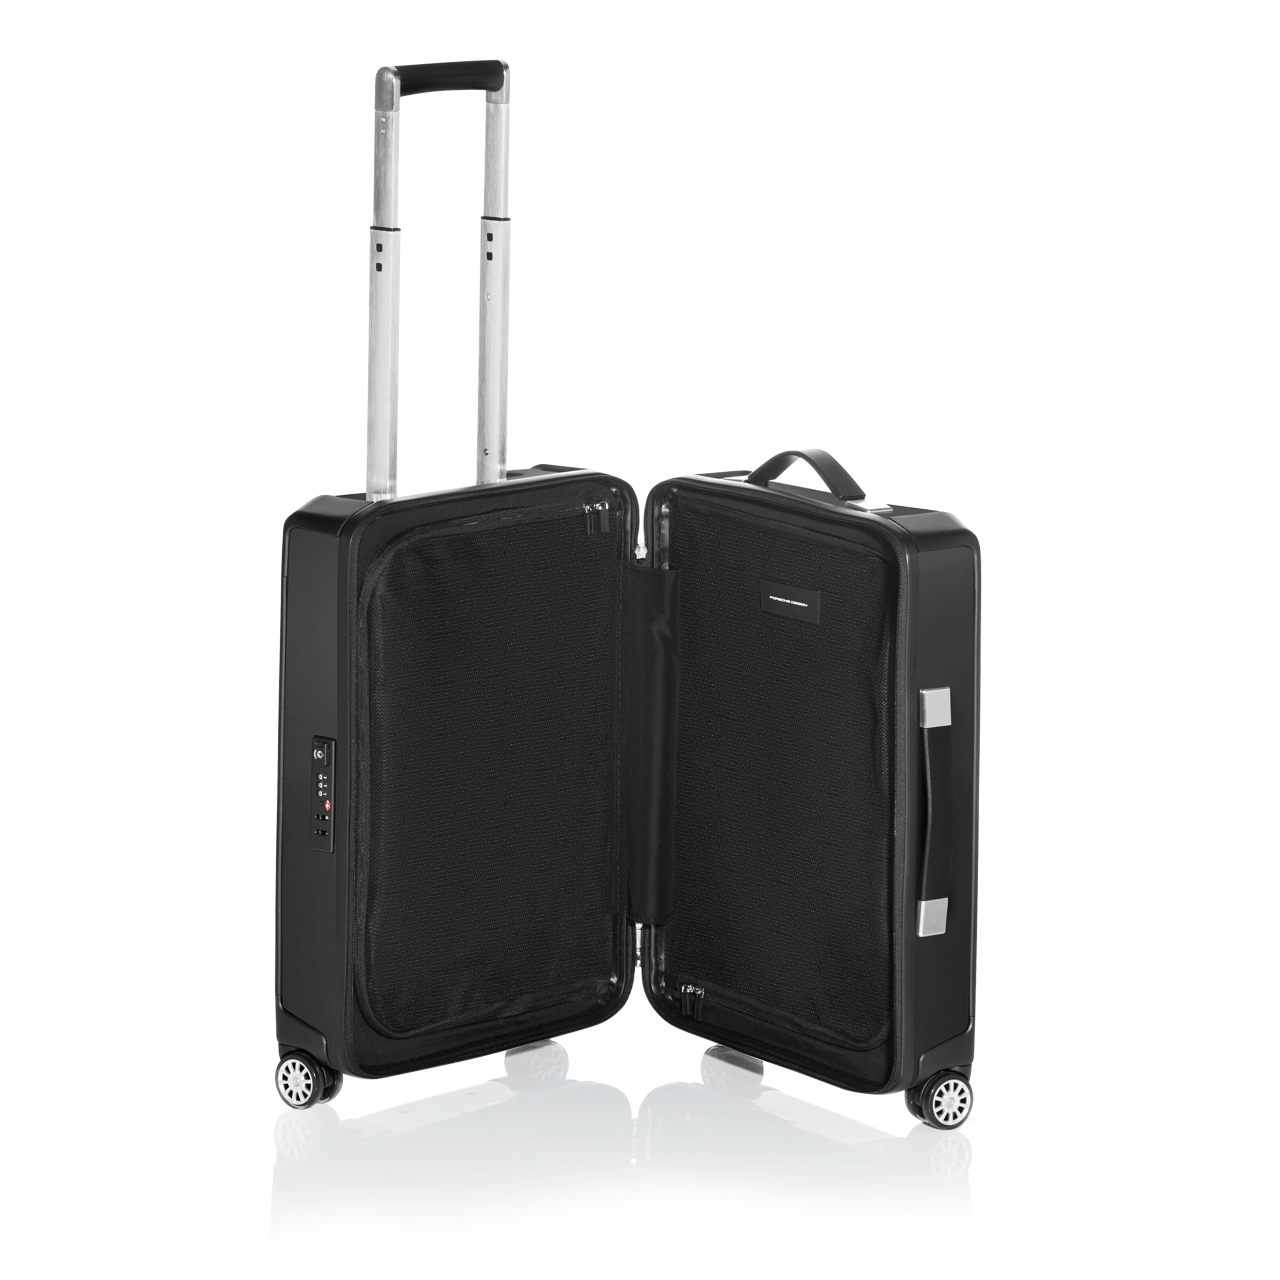 ROADSTER HARDCASE TROLLEY S - фото 3